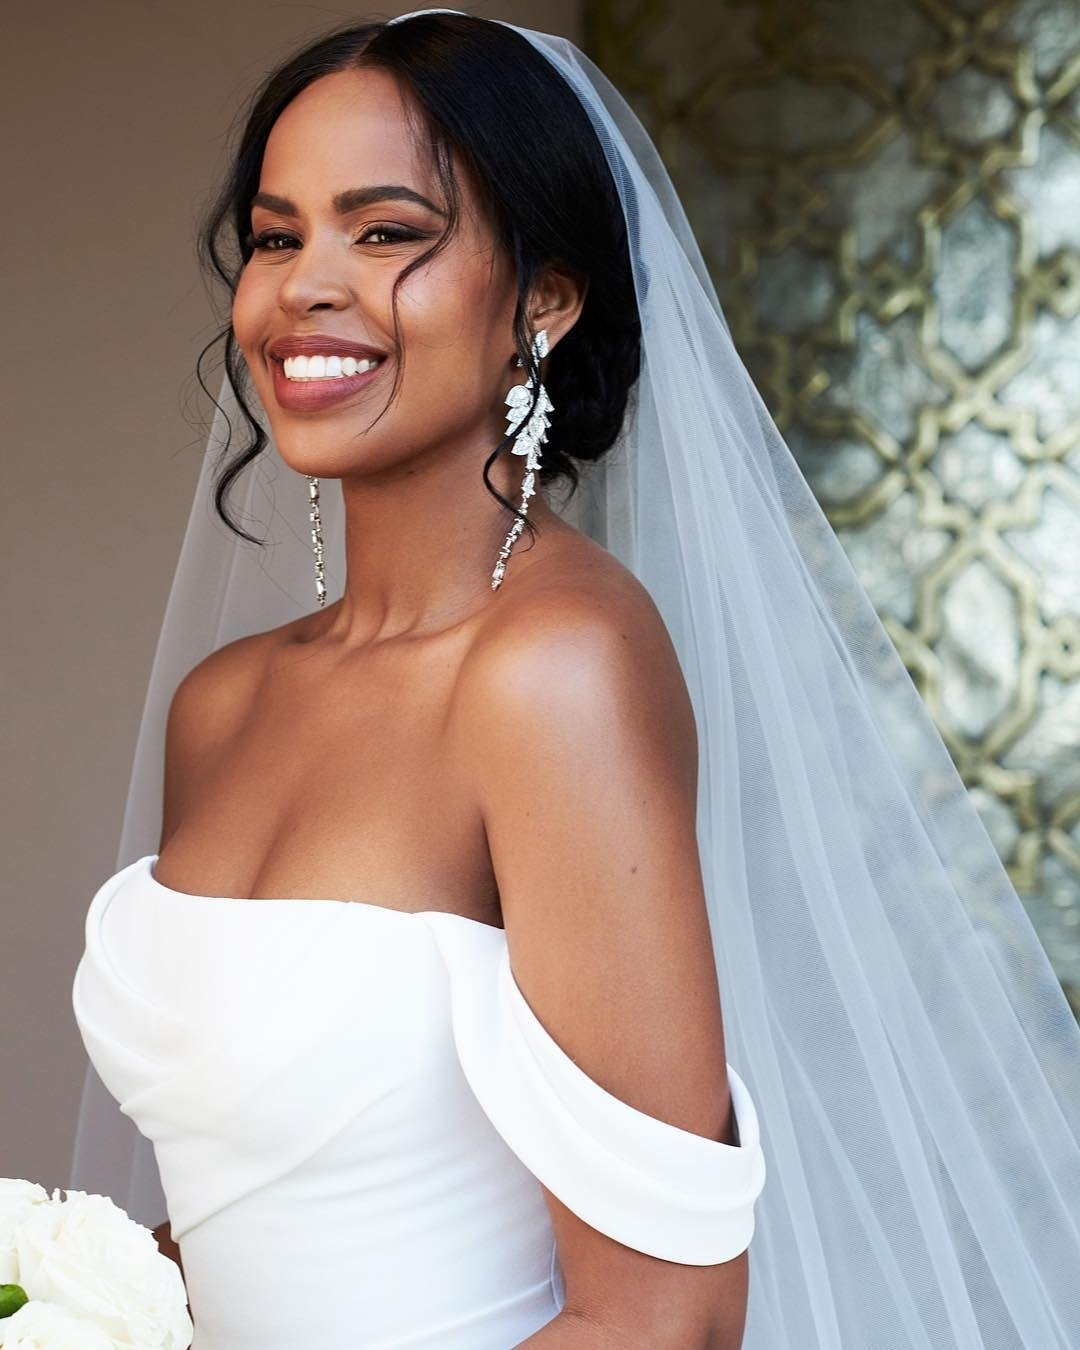 Idris Elba and Sabrina Dhowre tie the knot in Morocco. [PHOTOS] 1